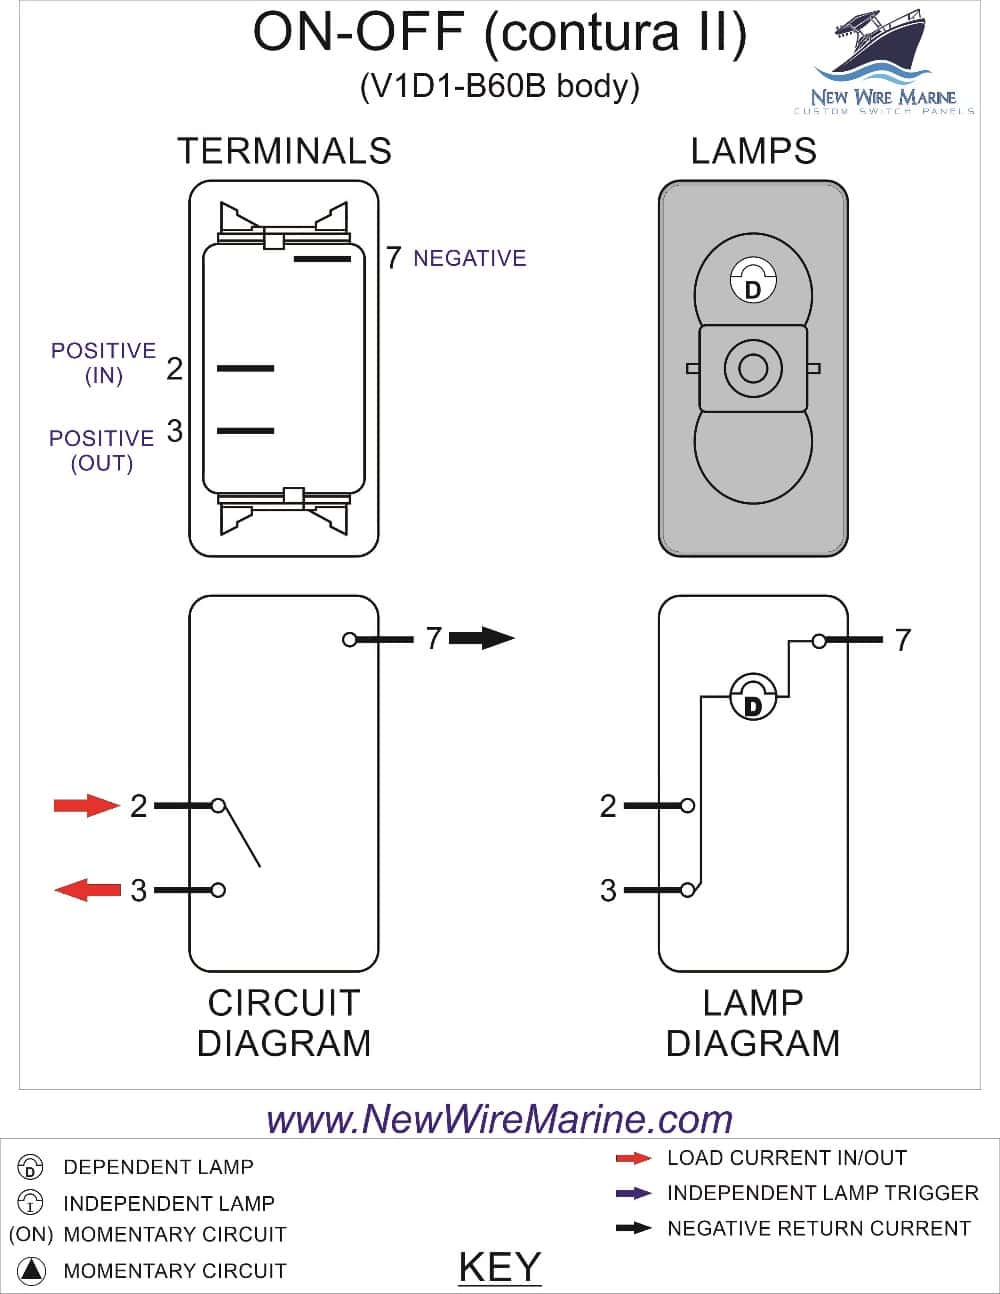 120v Electrical Switch Wiring Diagrams - Data Wiring Diagram on 120v single phase wiring, 120v electrical cord wiring diagram, residential electrical wiring diagrams, tork time clock wiring diagrams, electrical drawings wiring diagrams, electrical control wiring diagrams, industrial electrical wiring diagrams, 120v electrical outlet, boat electrical wiring diagrams, house electrical wiring diagrams, chassis electrical system diagrams, on off on rocker switches diagrams, 2 post lift wiring diagrams, 120v transformer diagram 480-240, hall light switch circuit diagrams, diy wiring diagrams, electrical connections diagrams, 20 amp gfci wiring diagrams, dvr wiring diagrams, basic electrical schematic diagrams,